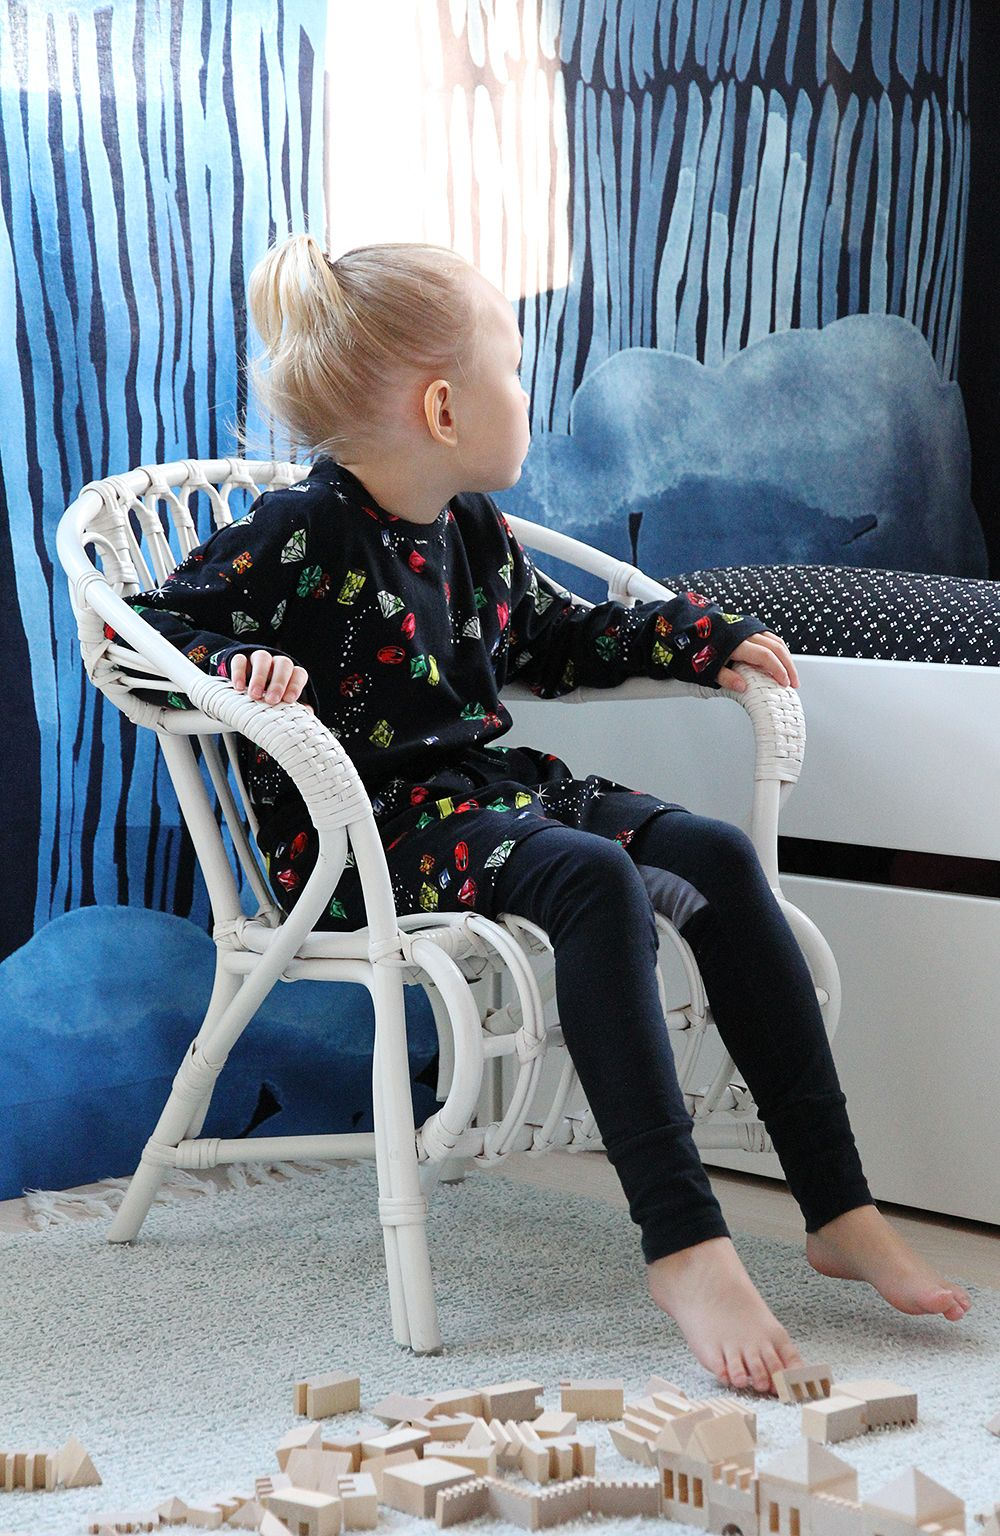 Wearing Mini Rodini. Marimekko curtains.